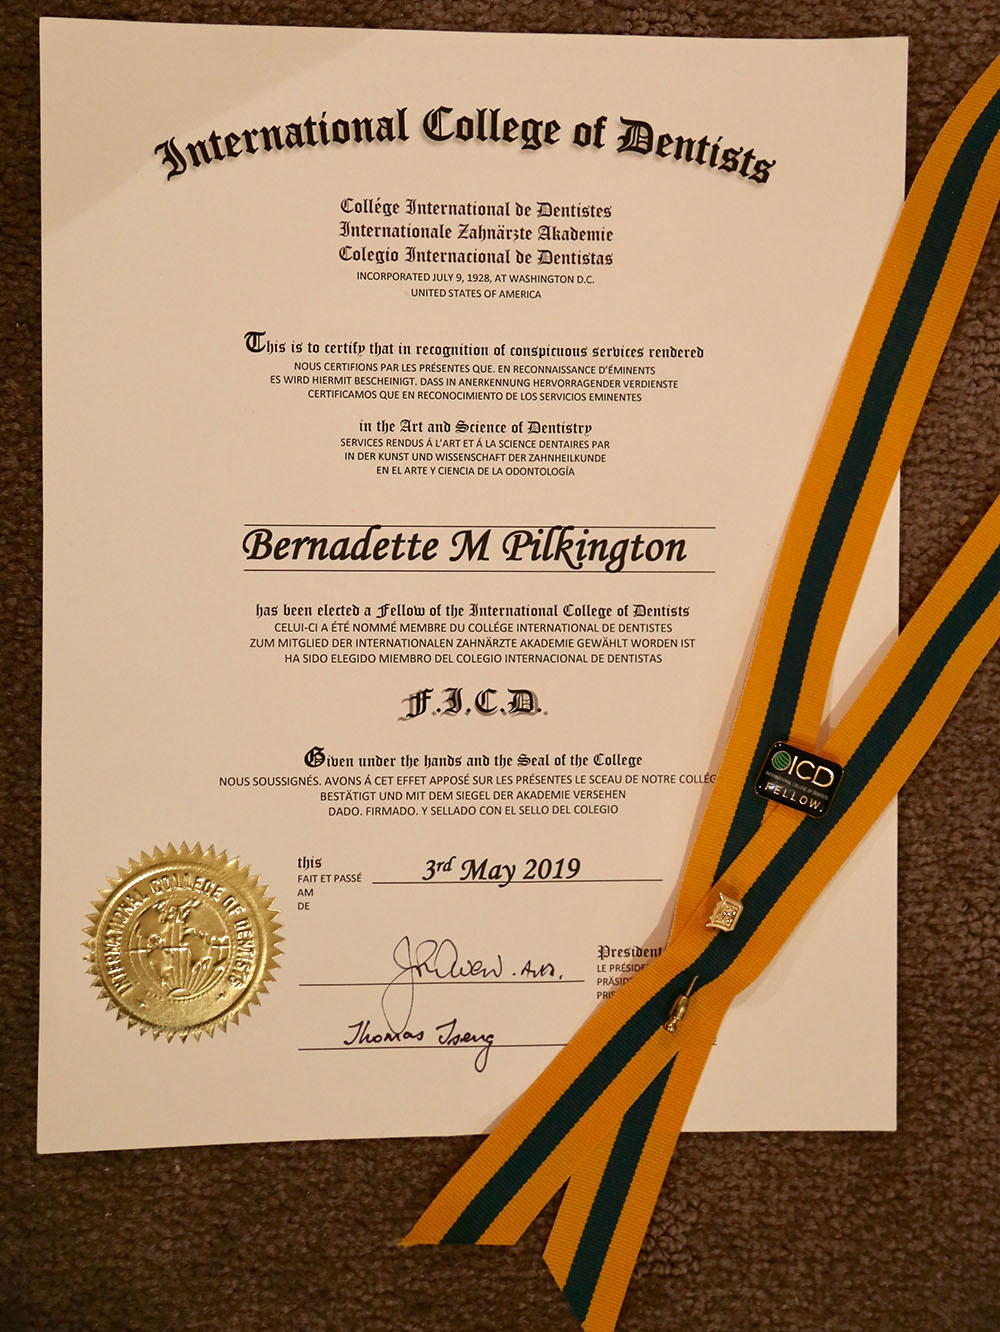 Certificate for election into the international college of dentists